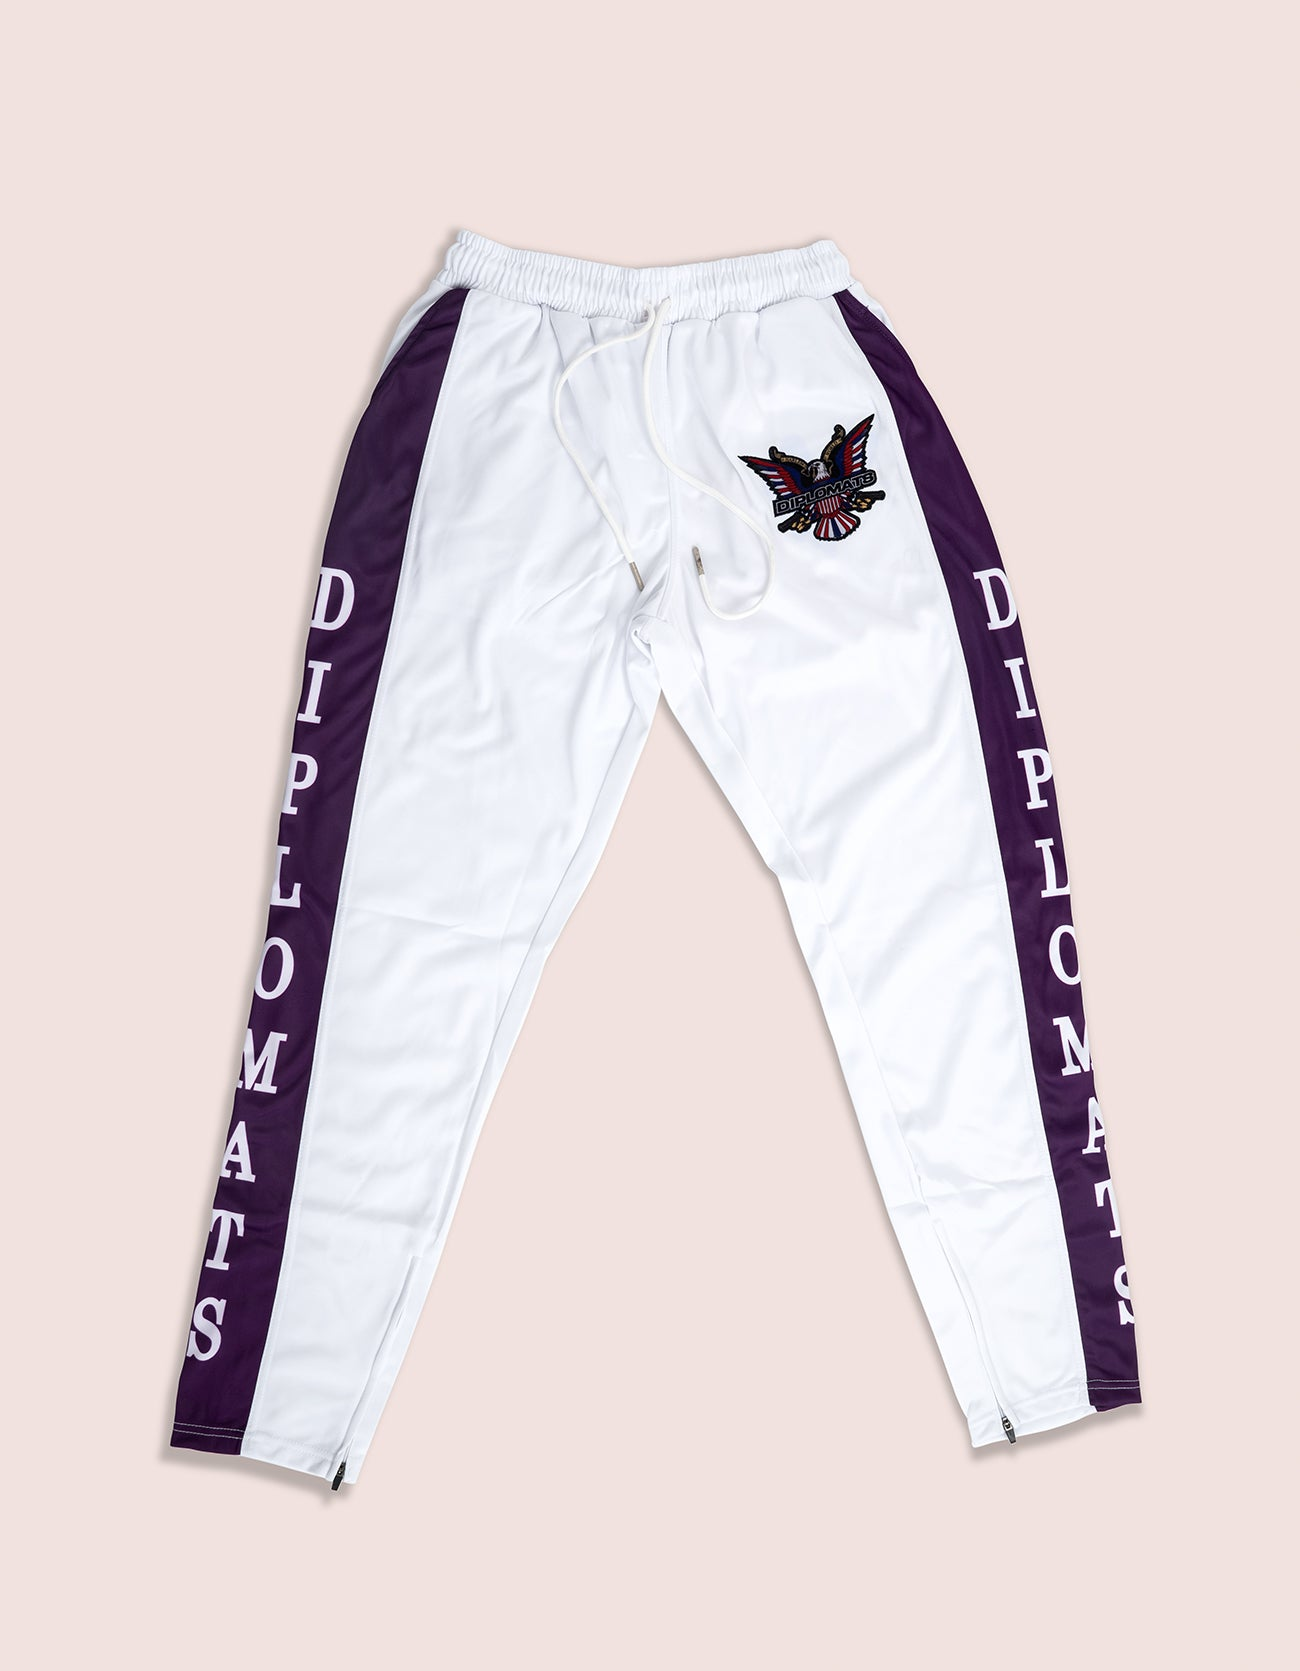 DIPSET Couture White/Purple Classic Track Suit